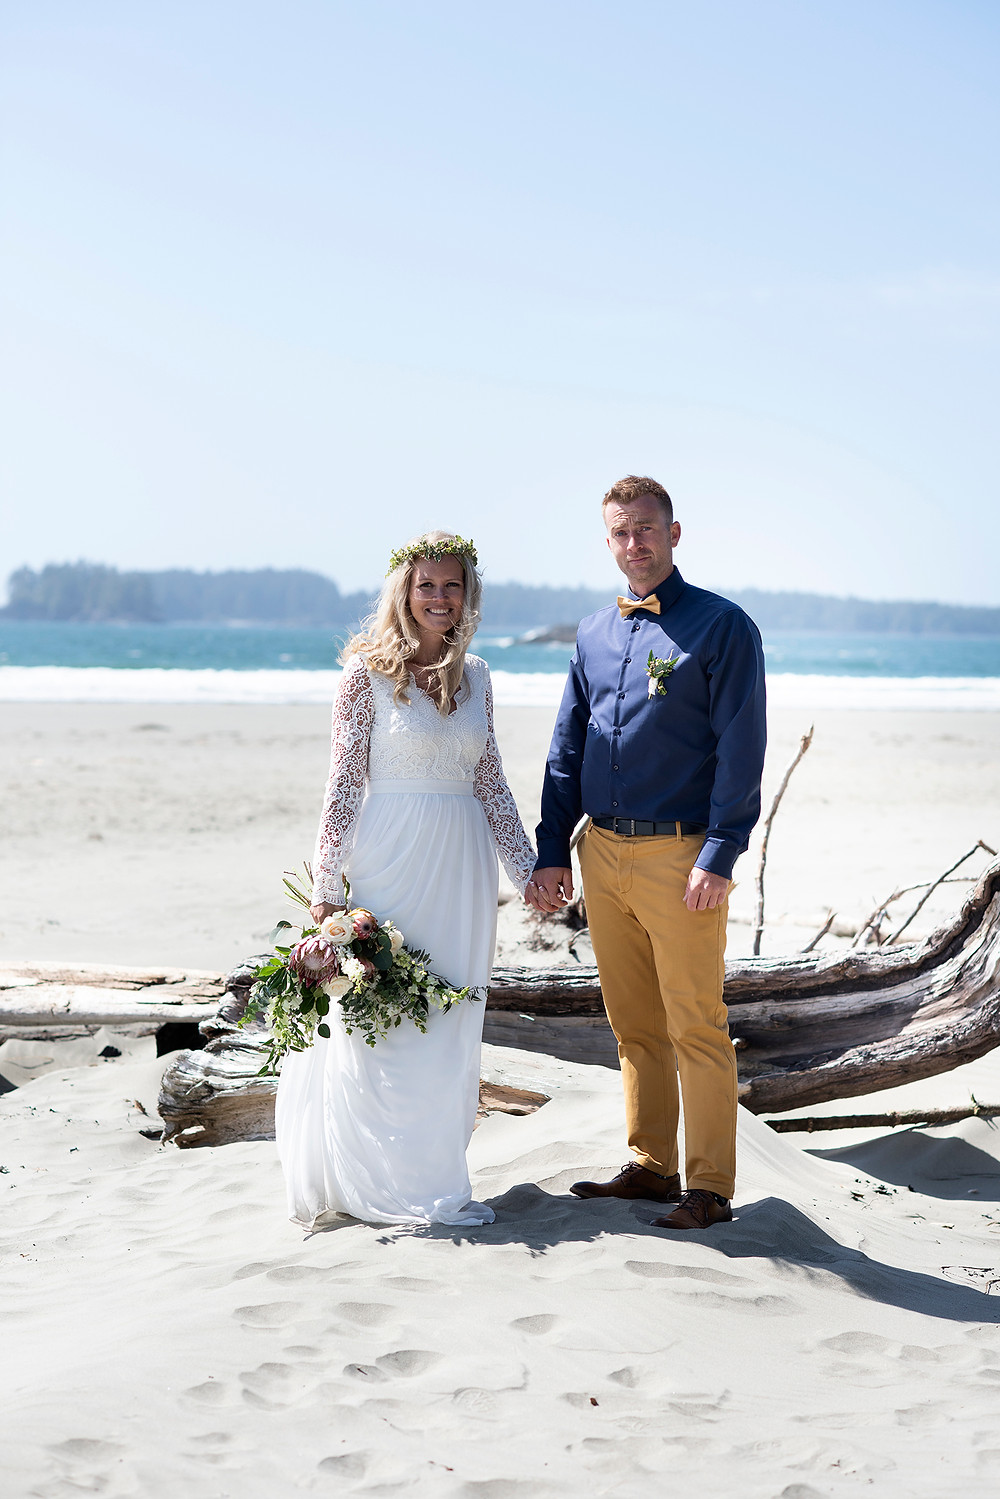 wedding on the beach in May in Tofino. Photographed by Kaitlyn Shea